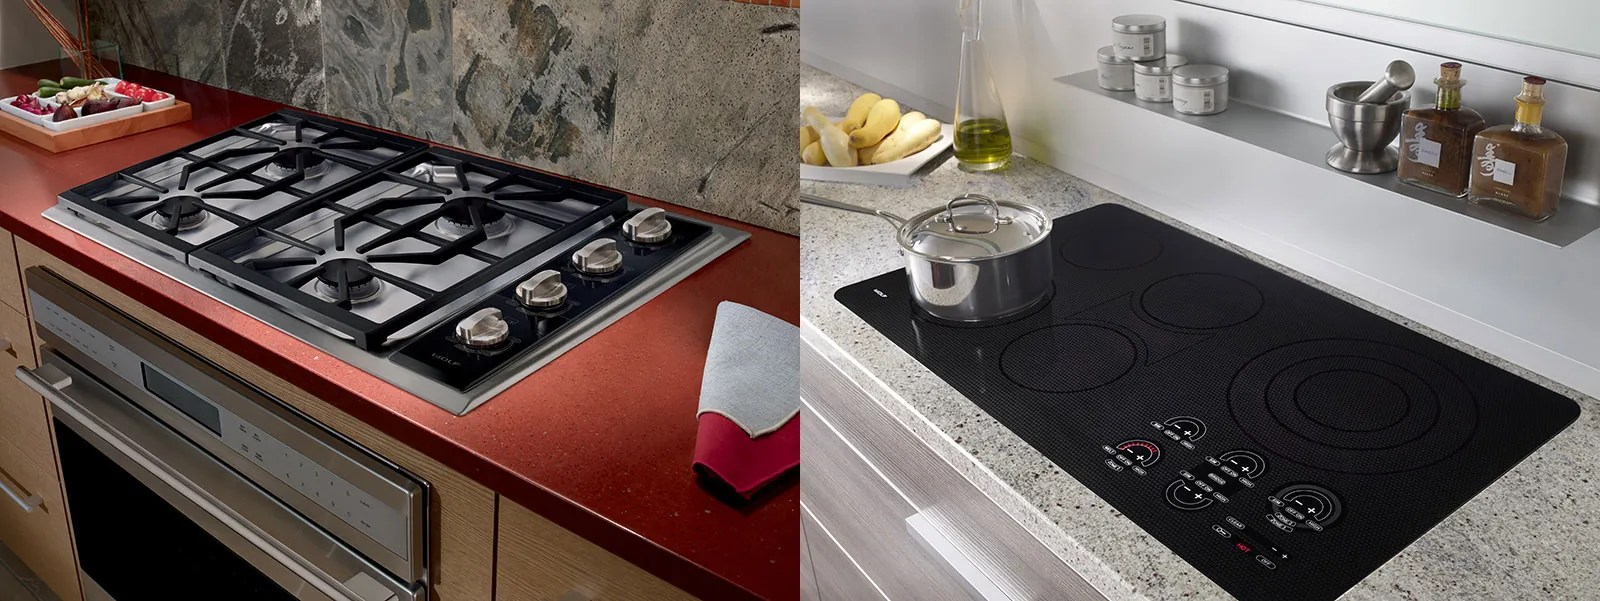 Blog Cooktop Showdown Gas Vs Electric Stove Tops Atherton